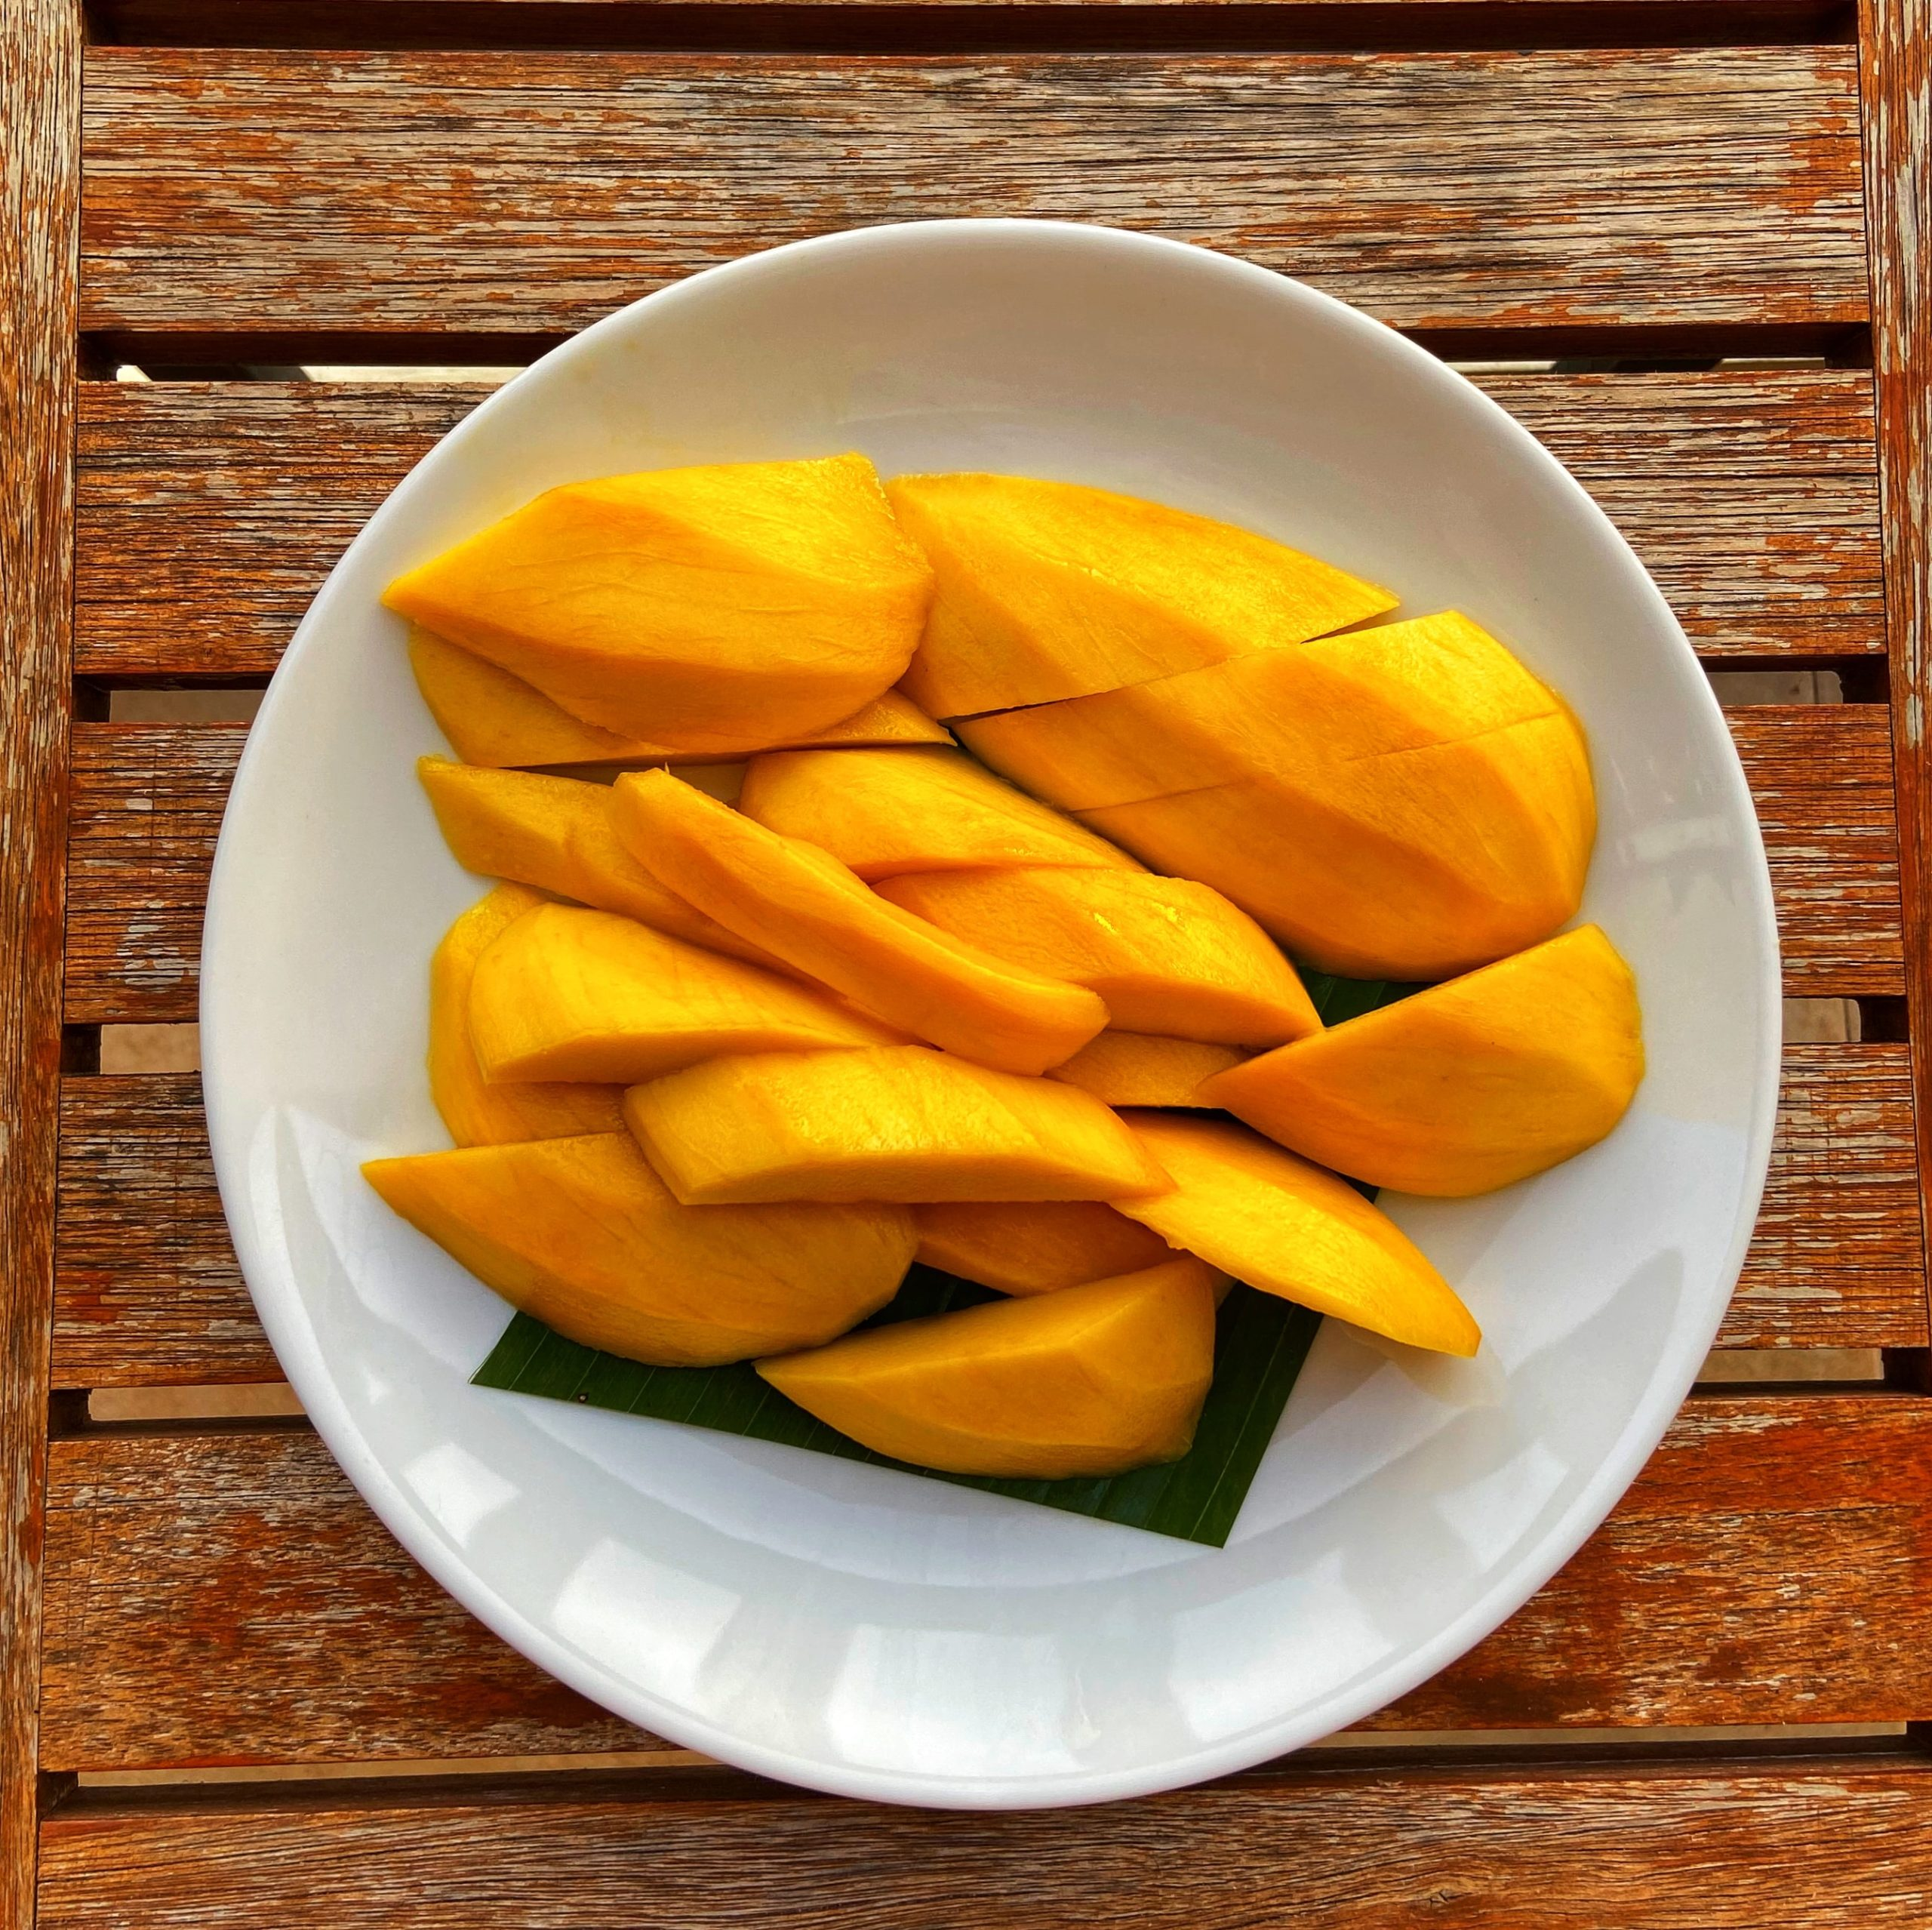 a plate of sliced mangos